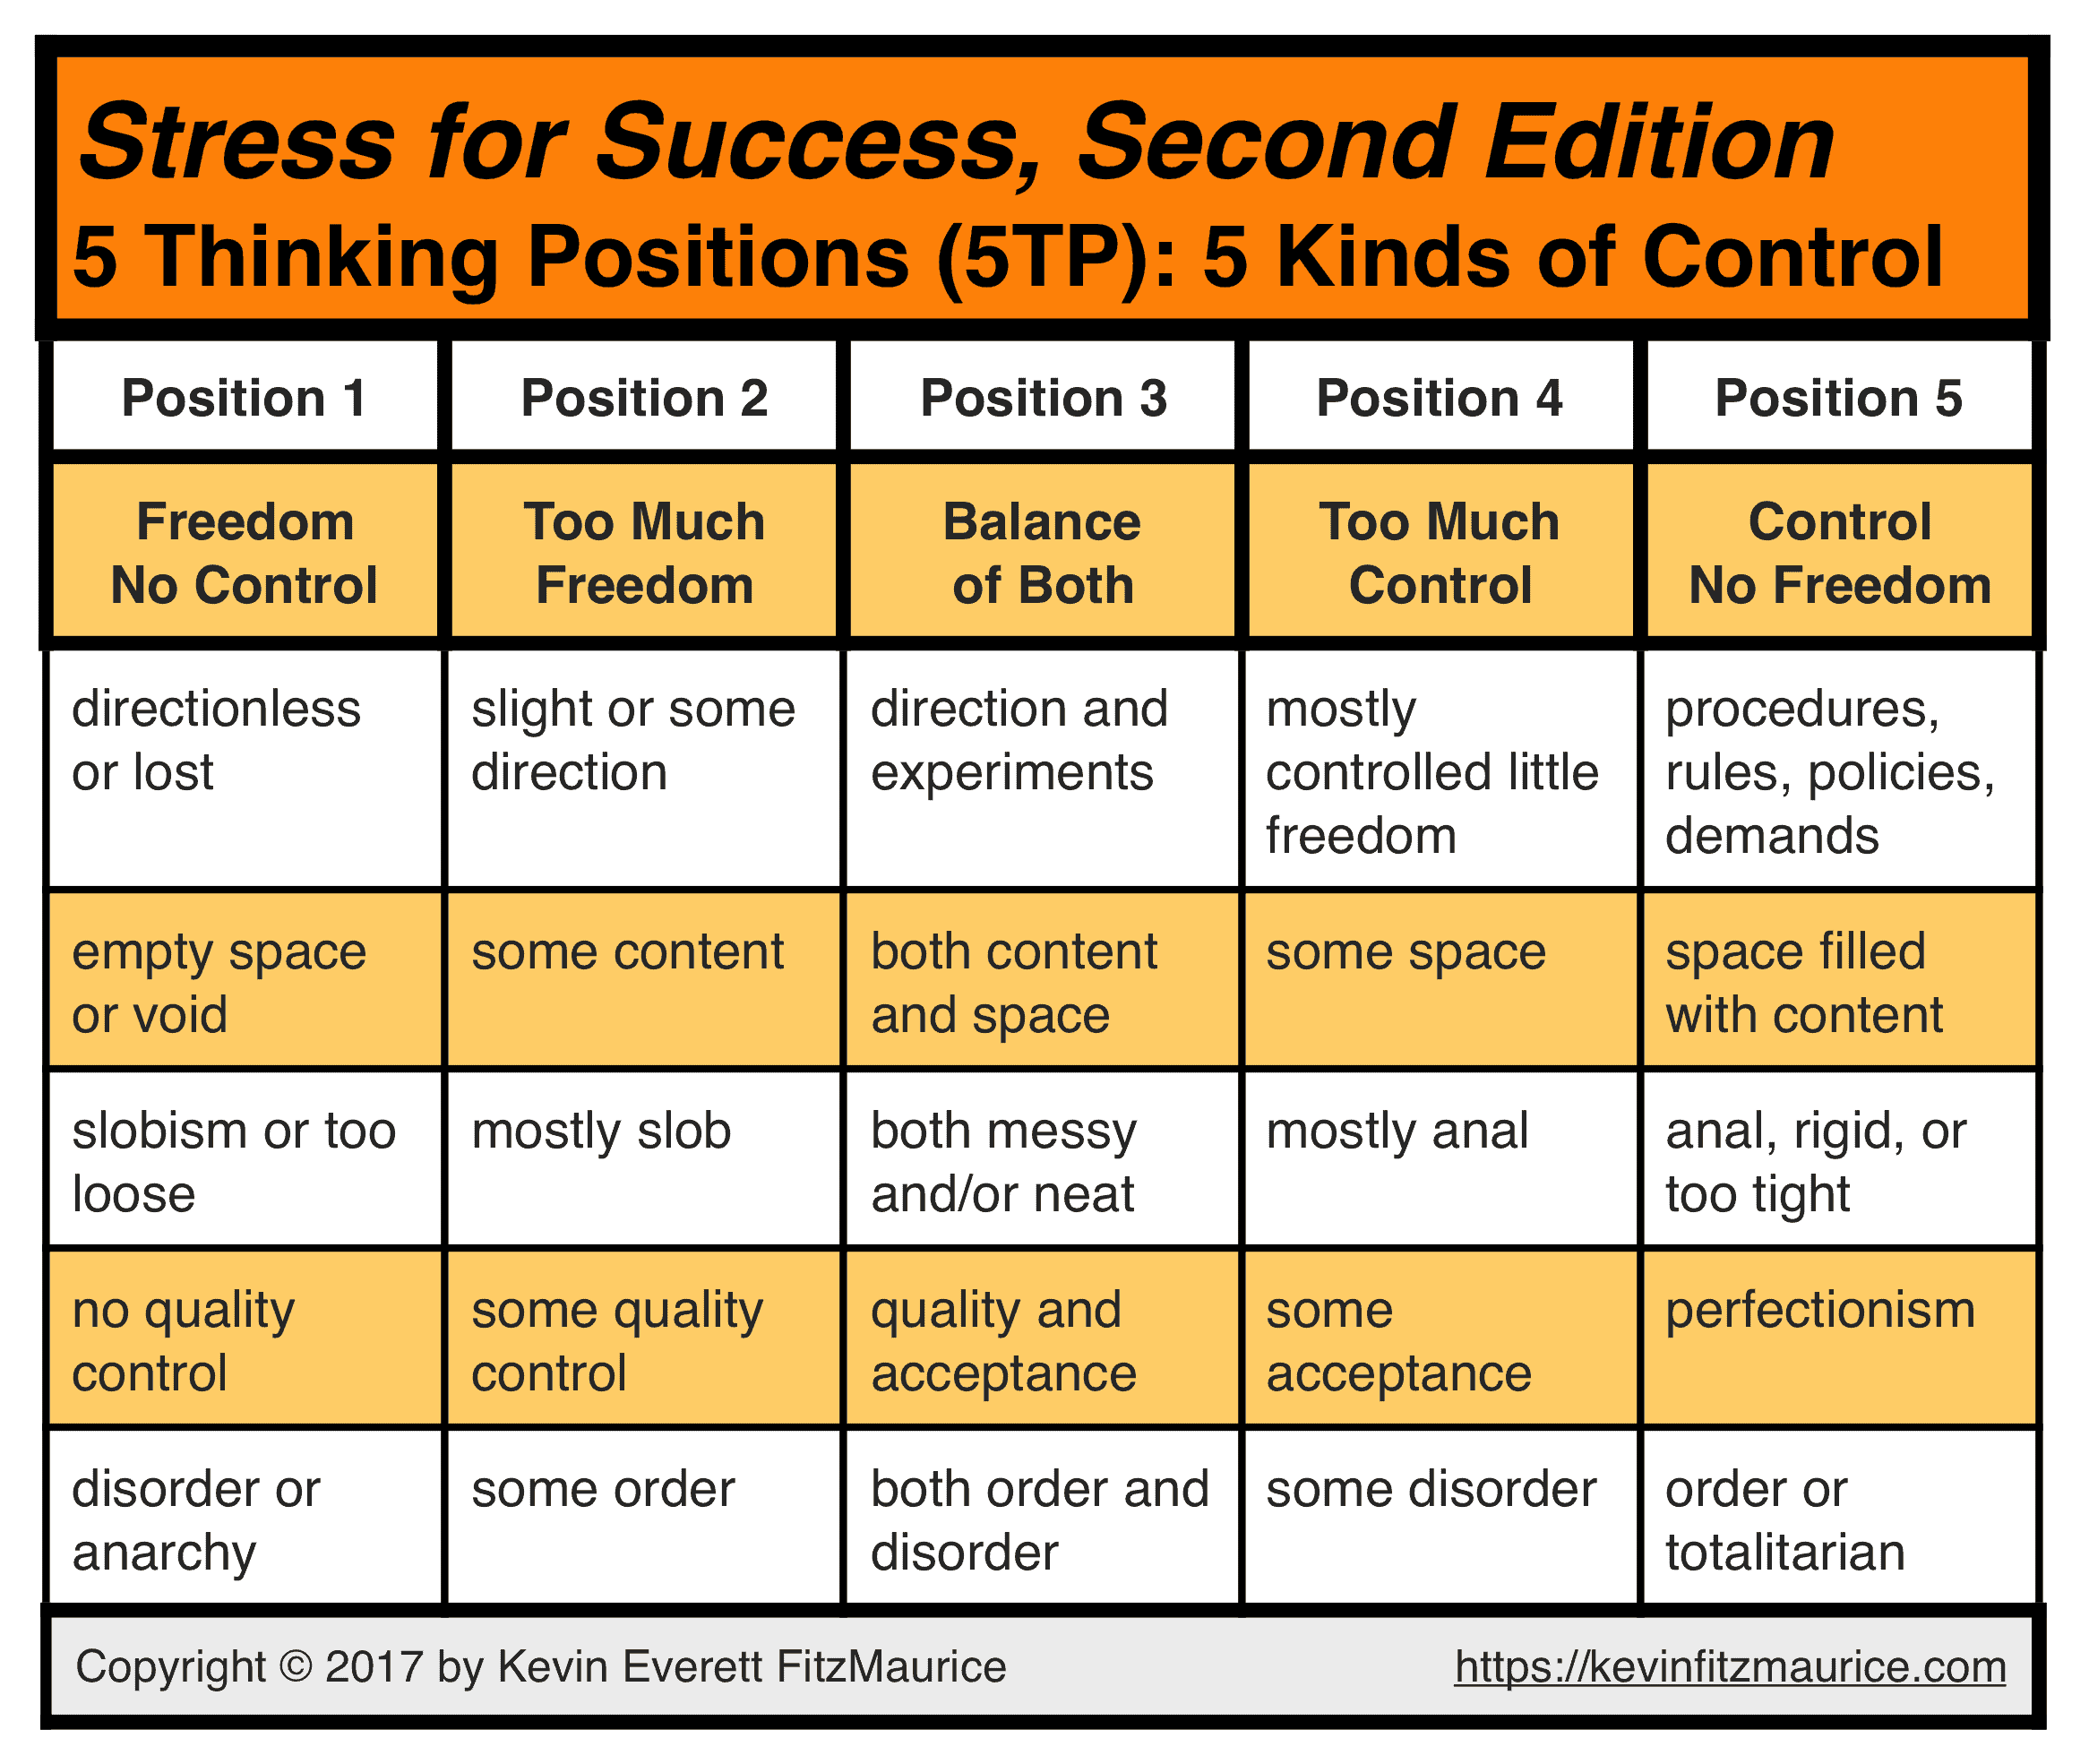 5TP: 5 Kinds of Control